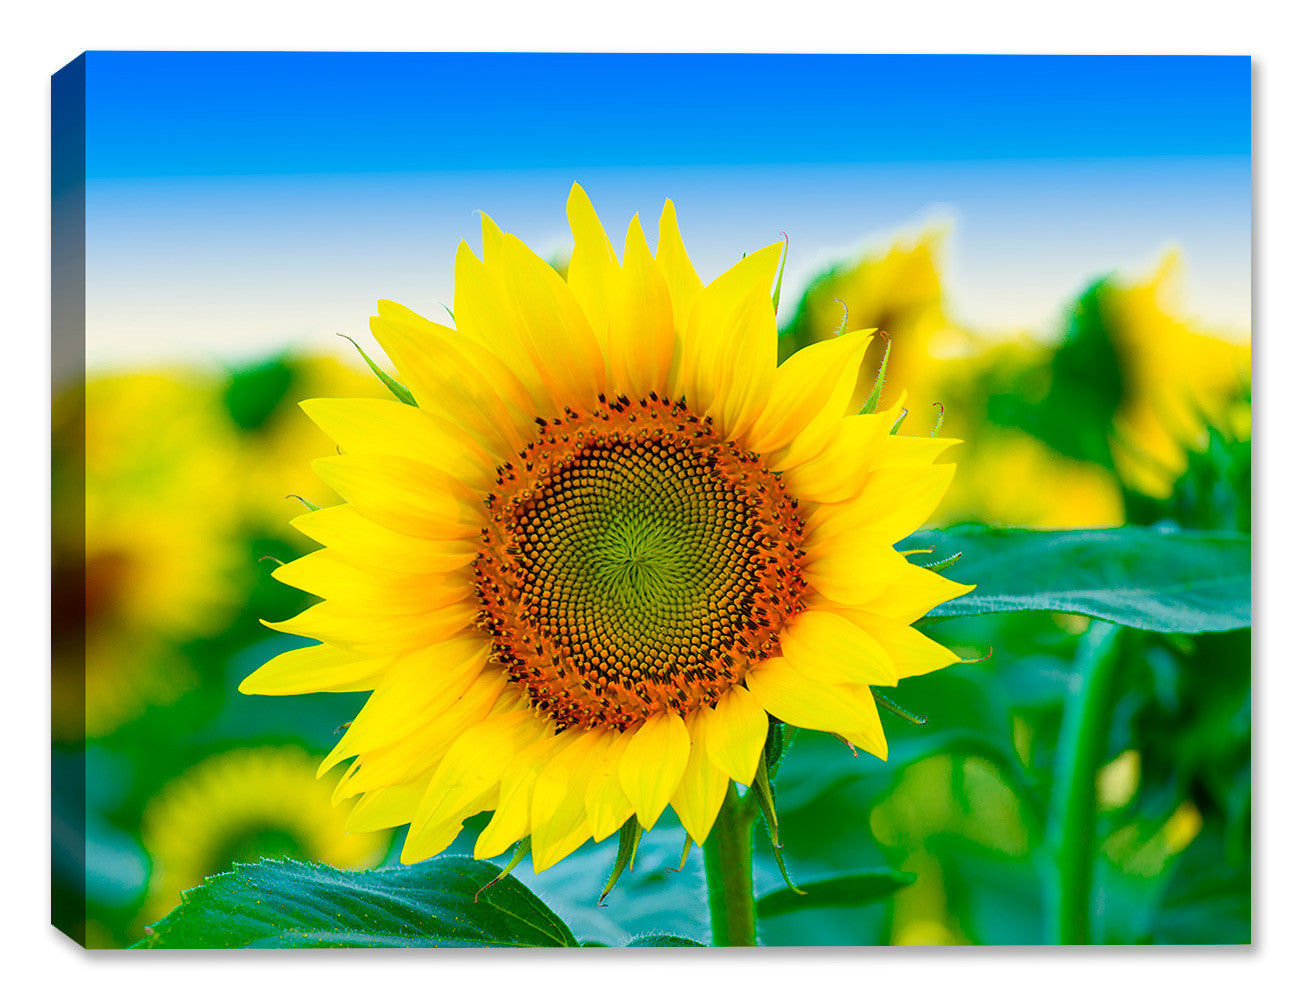 Sunflowers in Field of Flowers - Canvas Art Plus